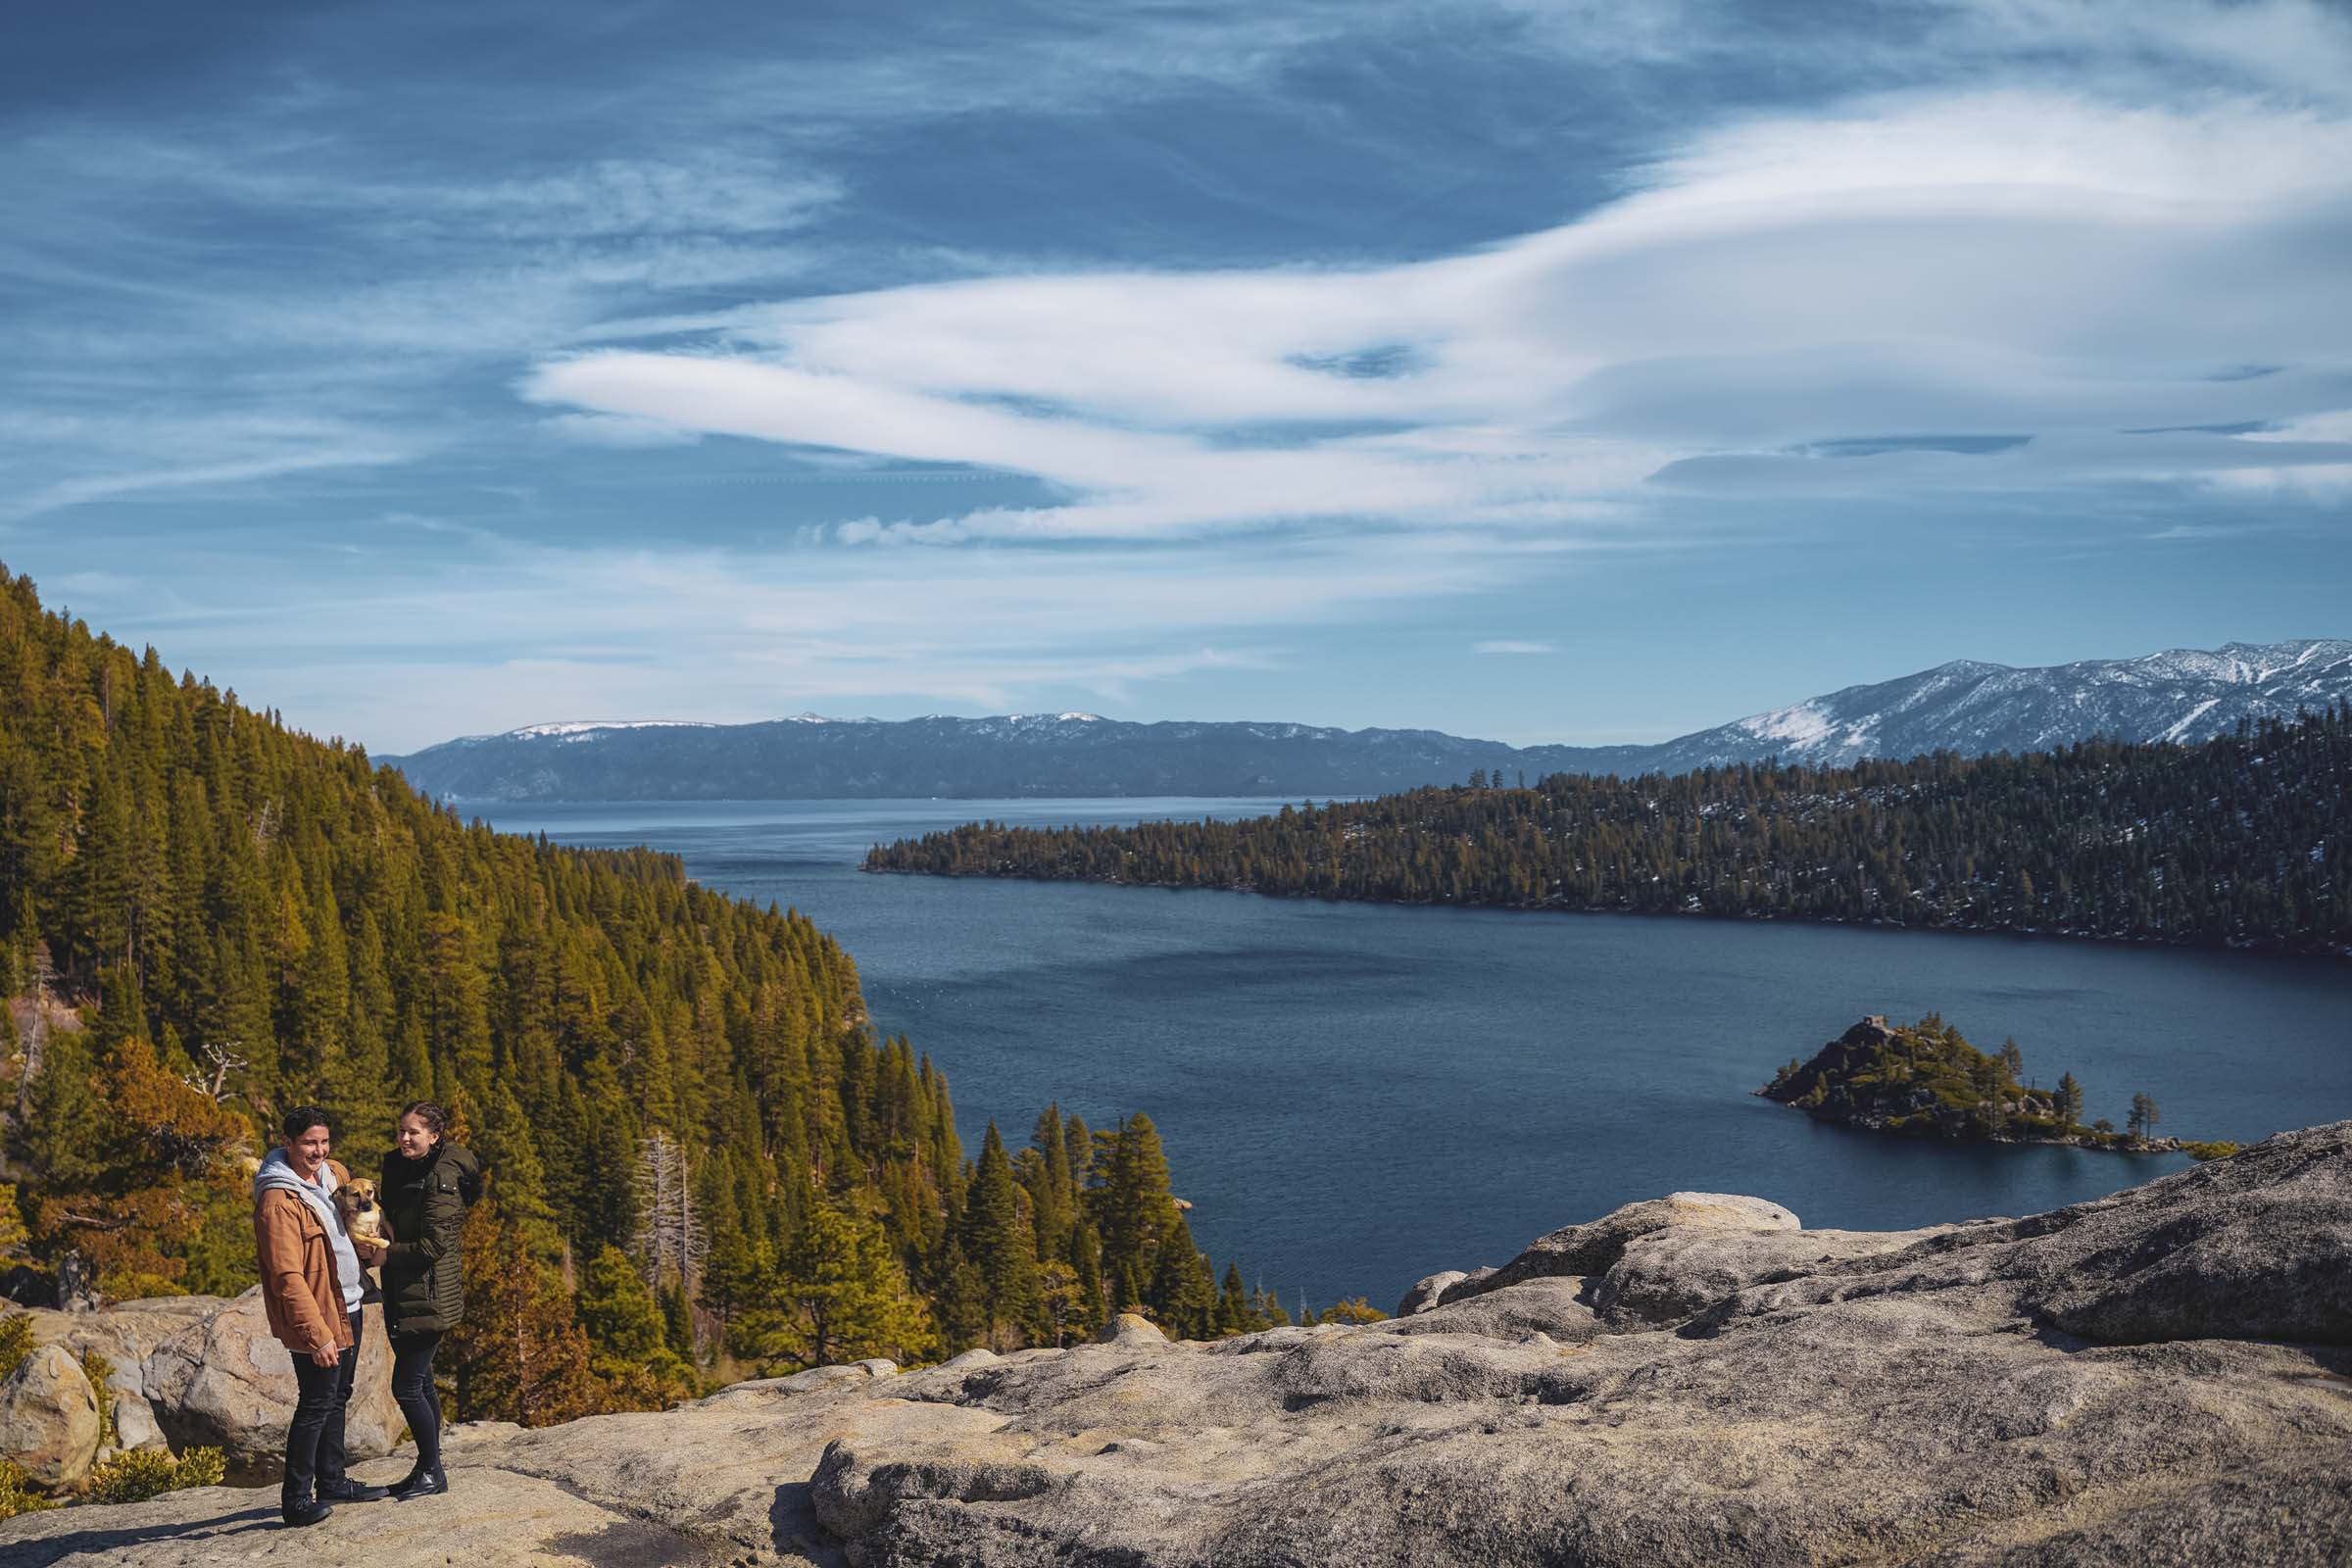 Emerald Bay State Park proposal